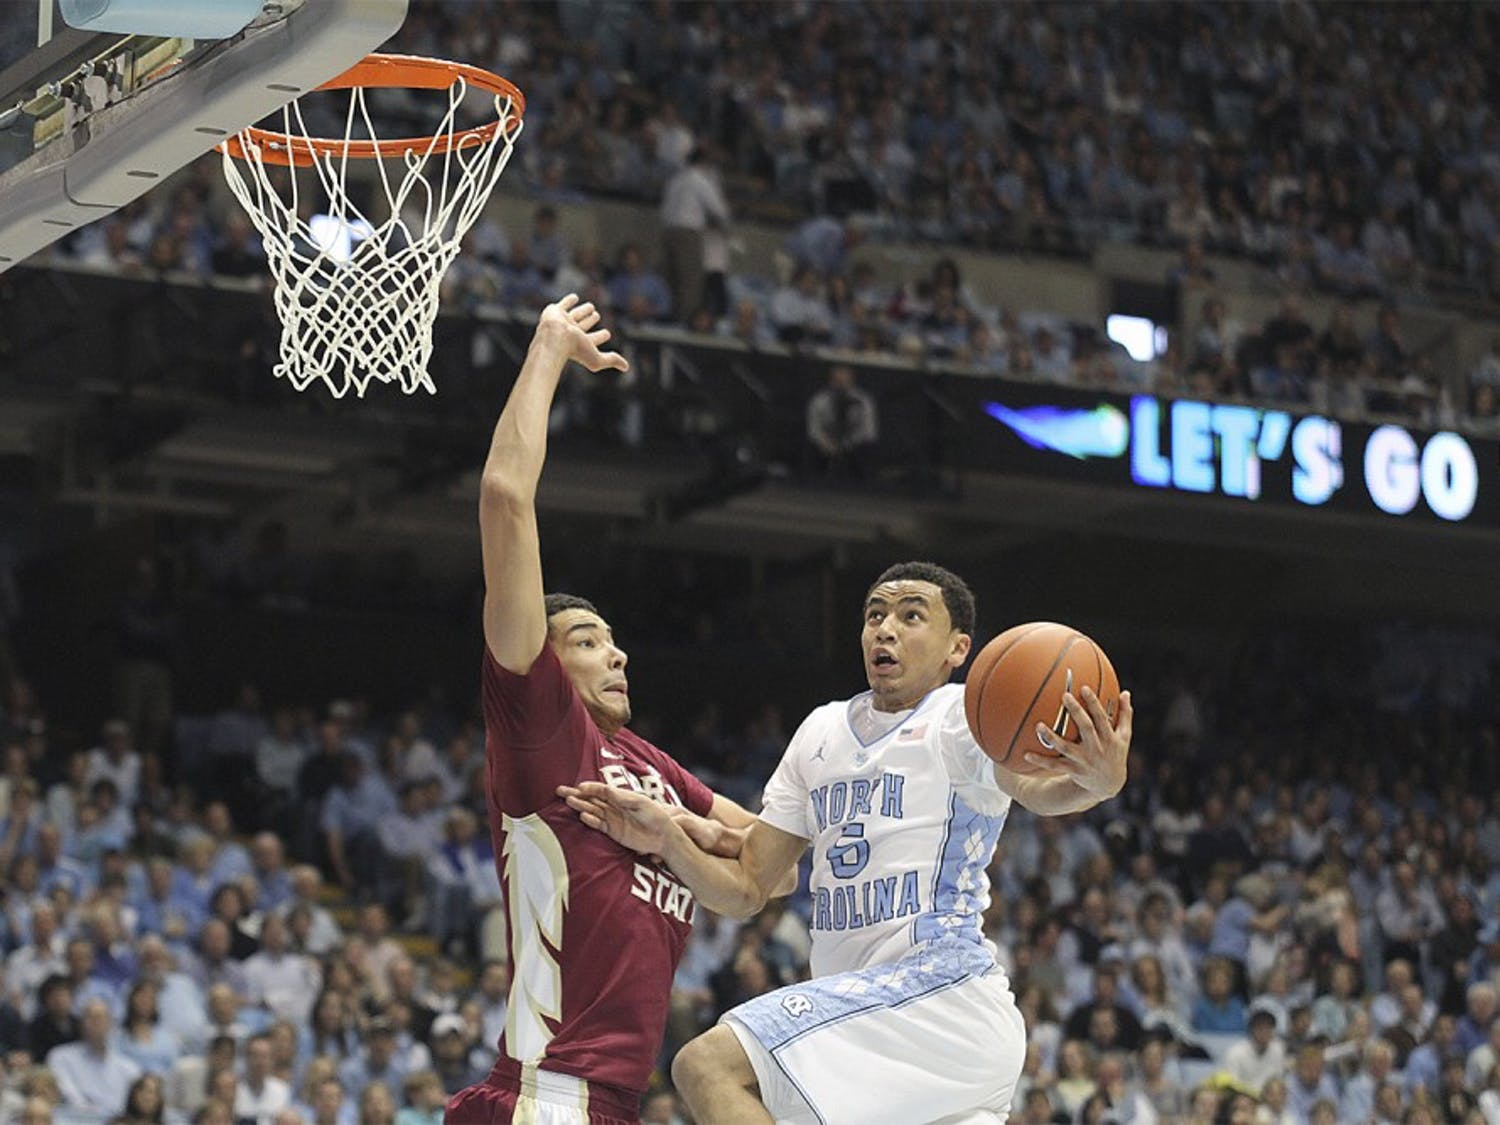 Junior point guard Marcus Paige goes up for a layup against a Florida State defender in a game on Feb. 17, 2014.